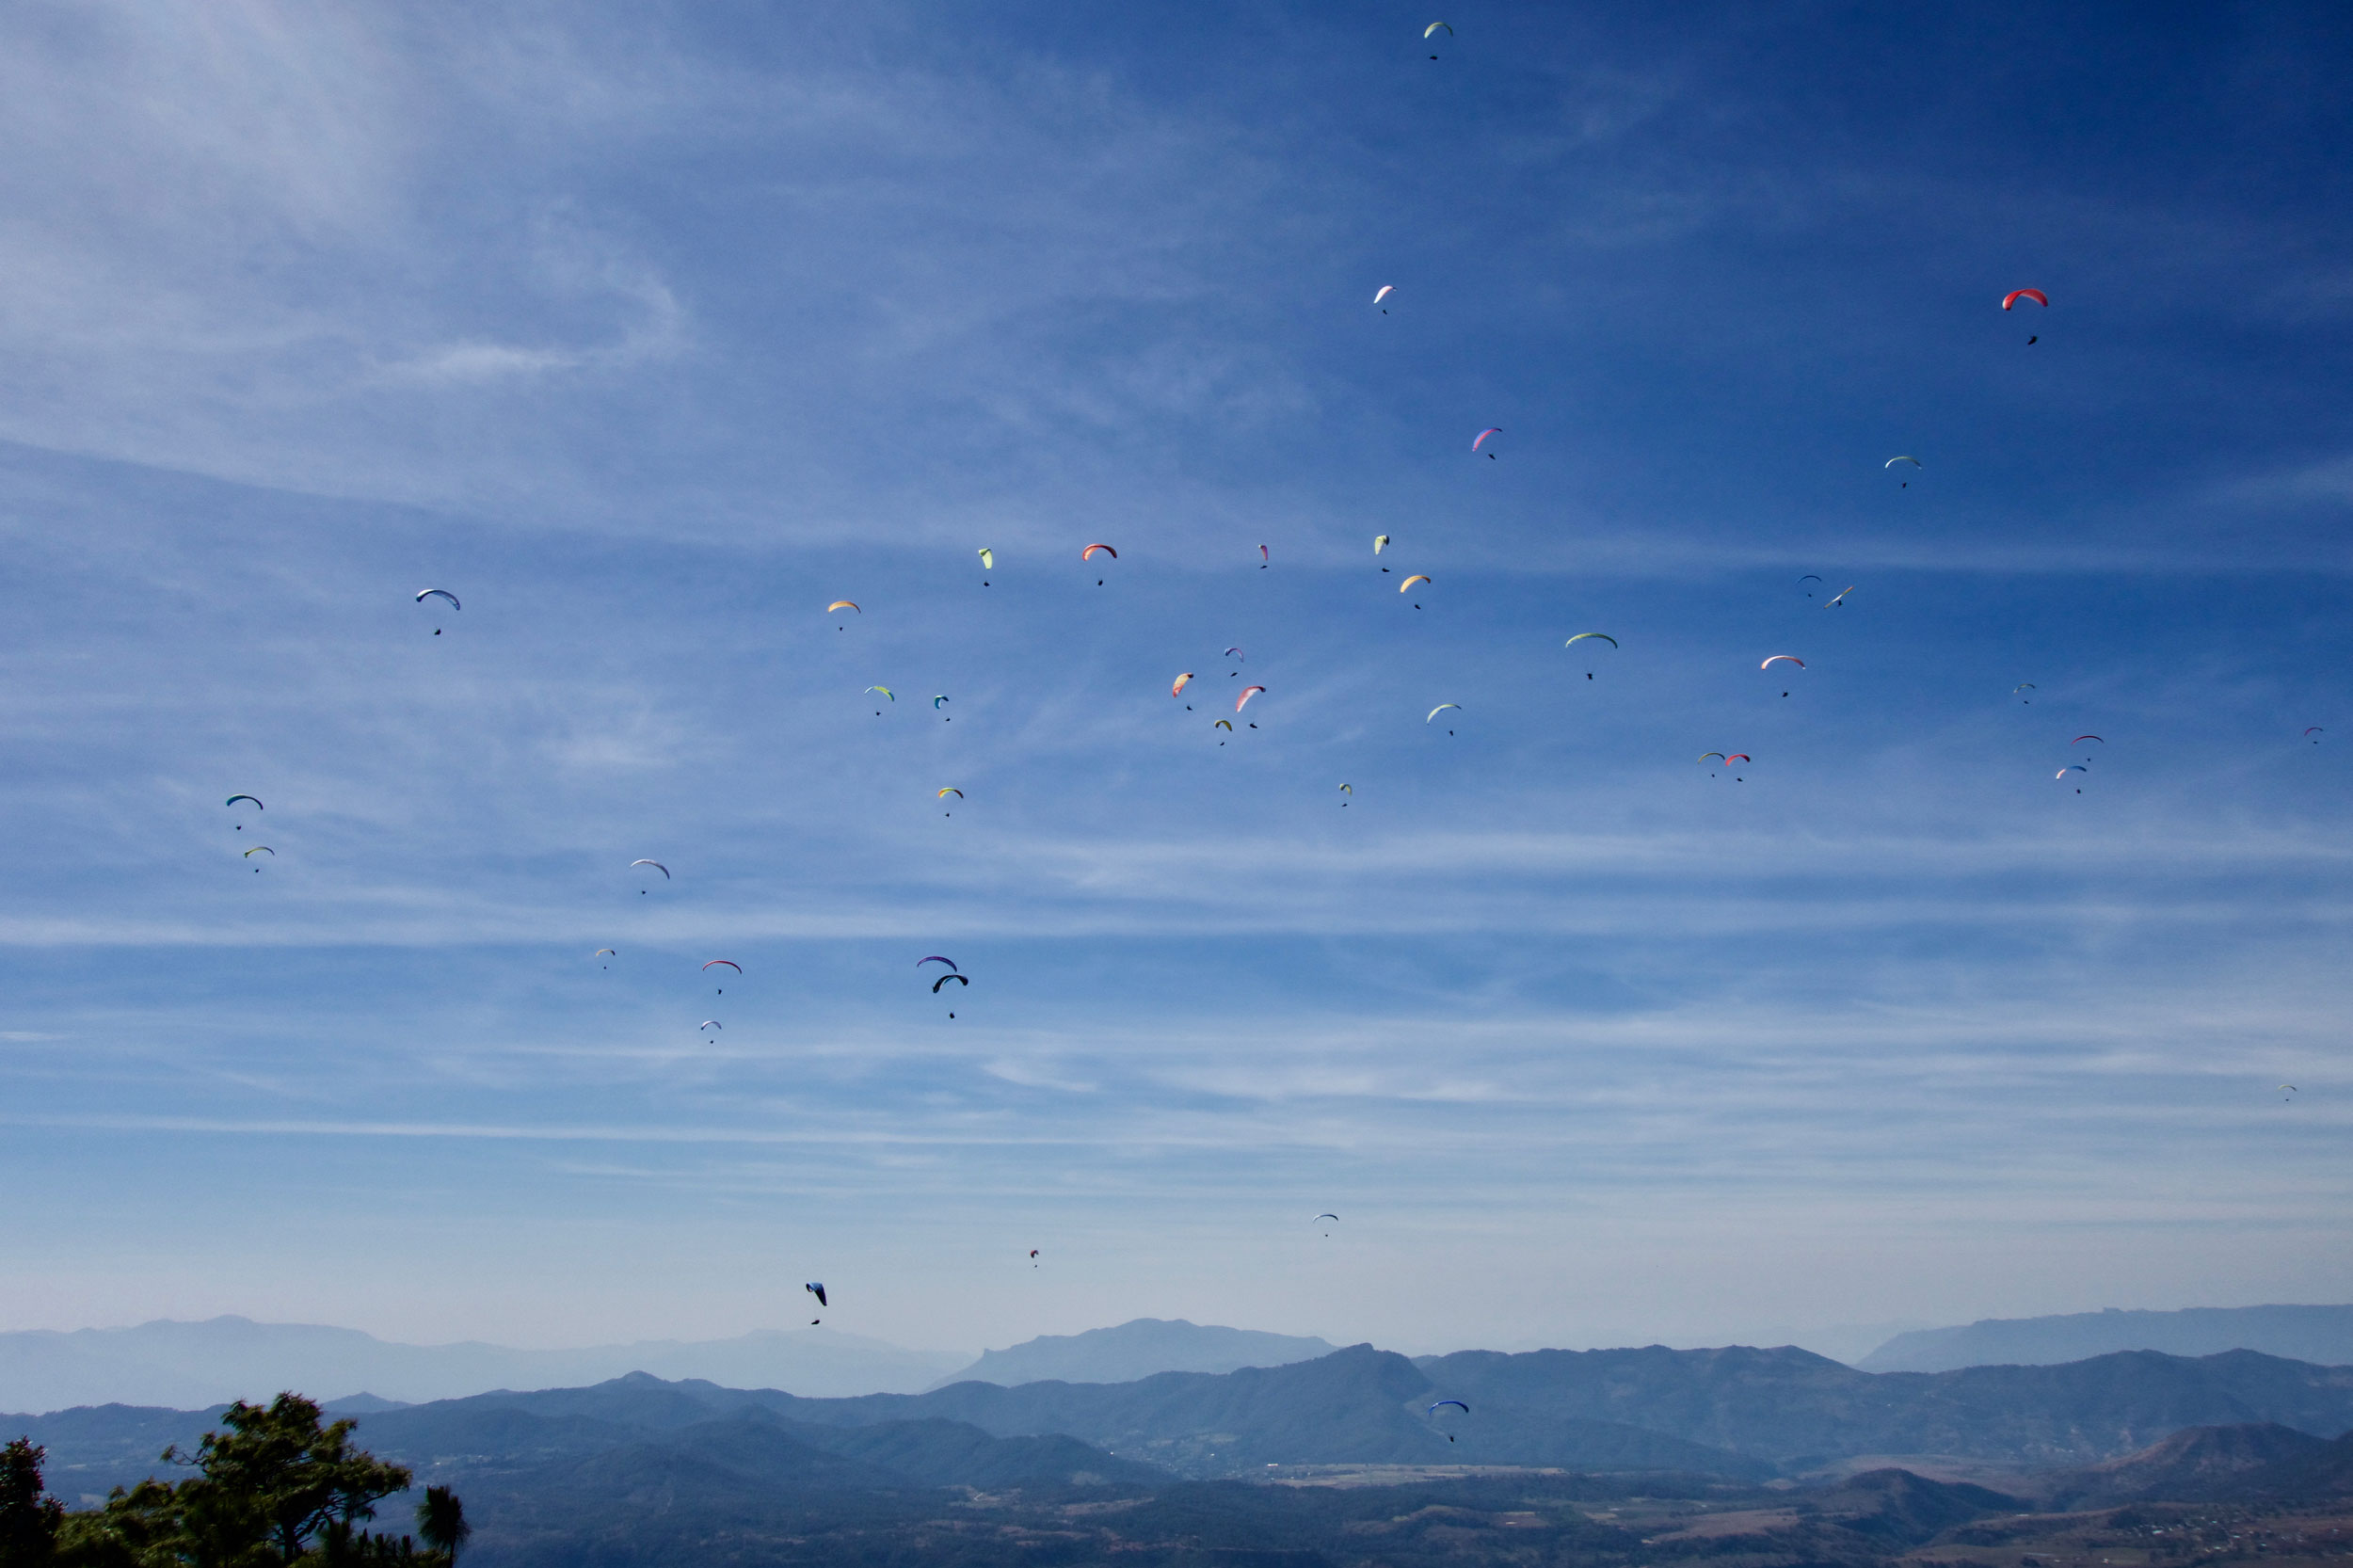 Paraglide-New-England-Trips-Valle-de-Bravo-Mexico-Gallery-House-Gaggle.jpg